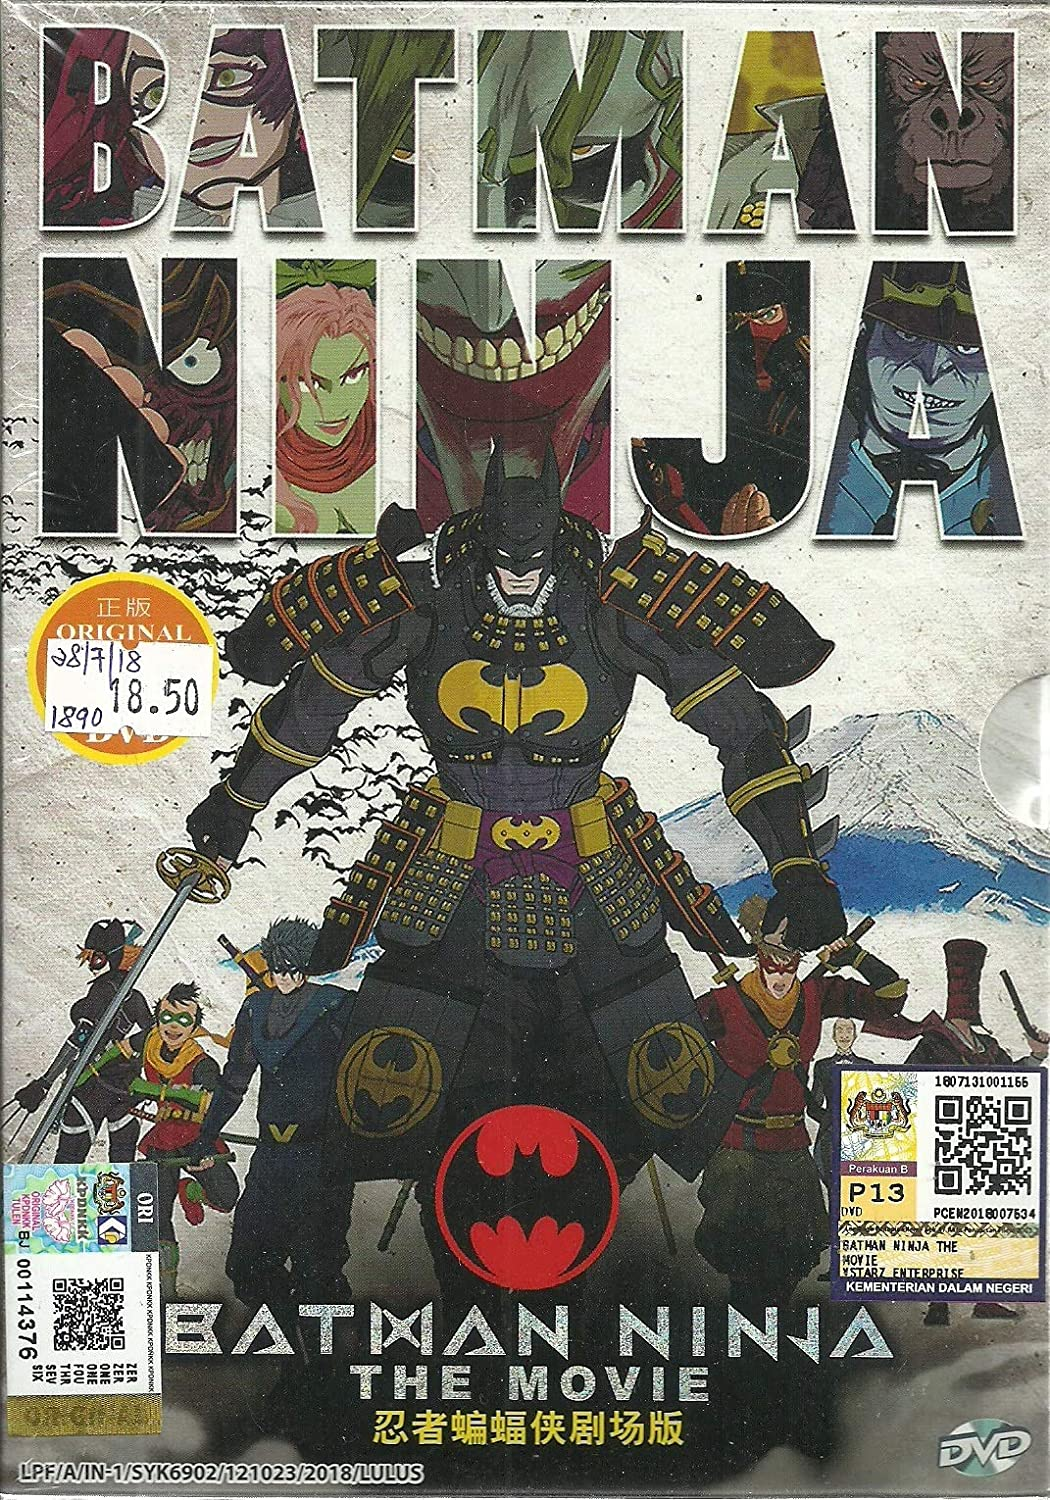 Amazon.com: BATMAN NINJA THE MOVIE (ENGLISH AUDIO ...